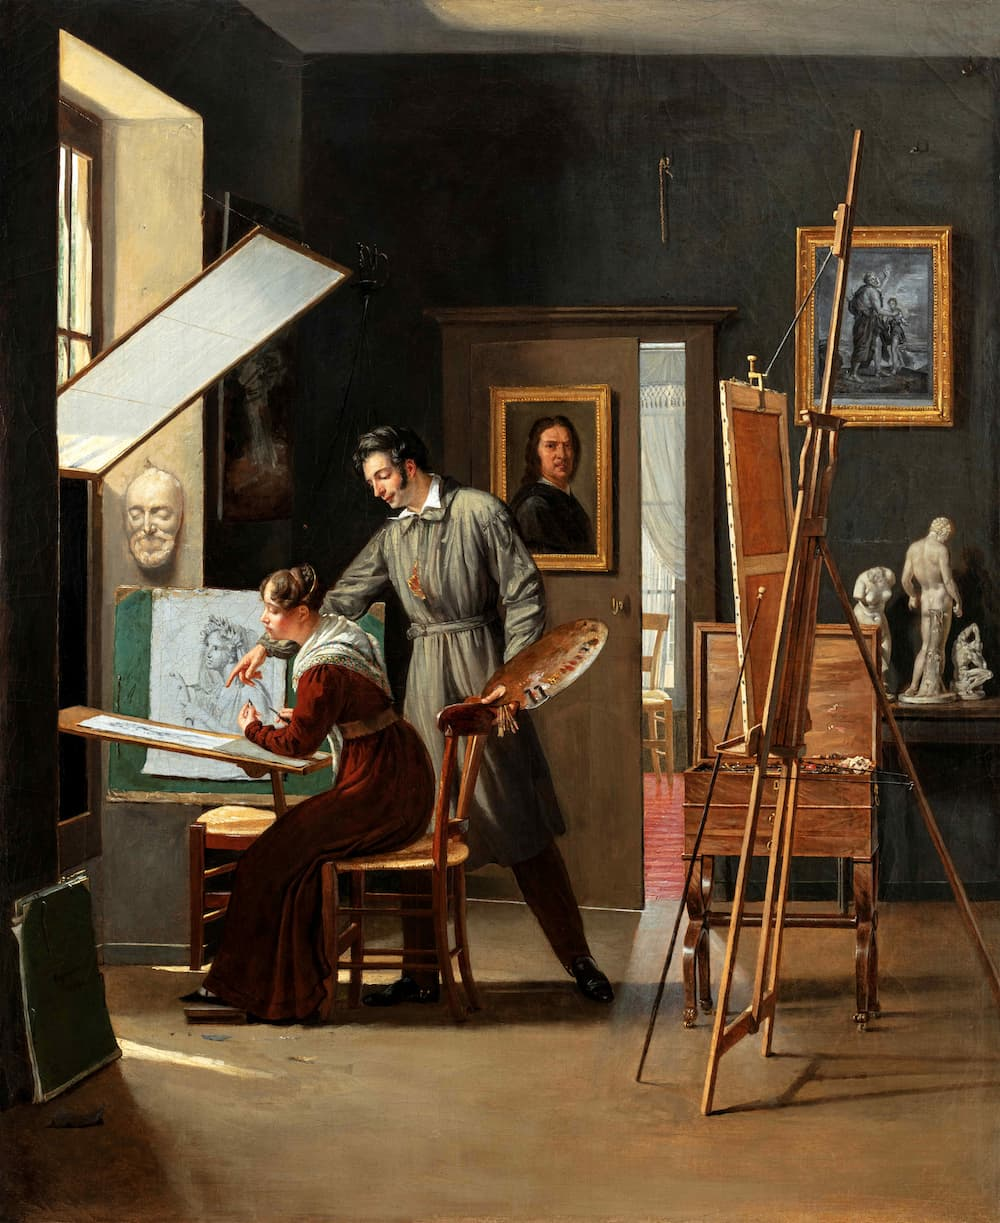 Paul Claude-Michel CARPENTIER, A painter in his studio giving advice to his young pupil